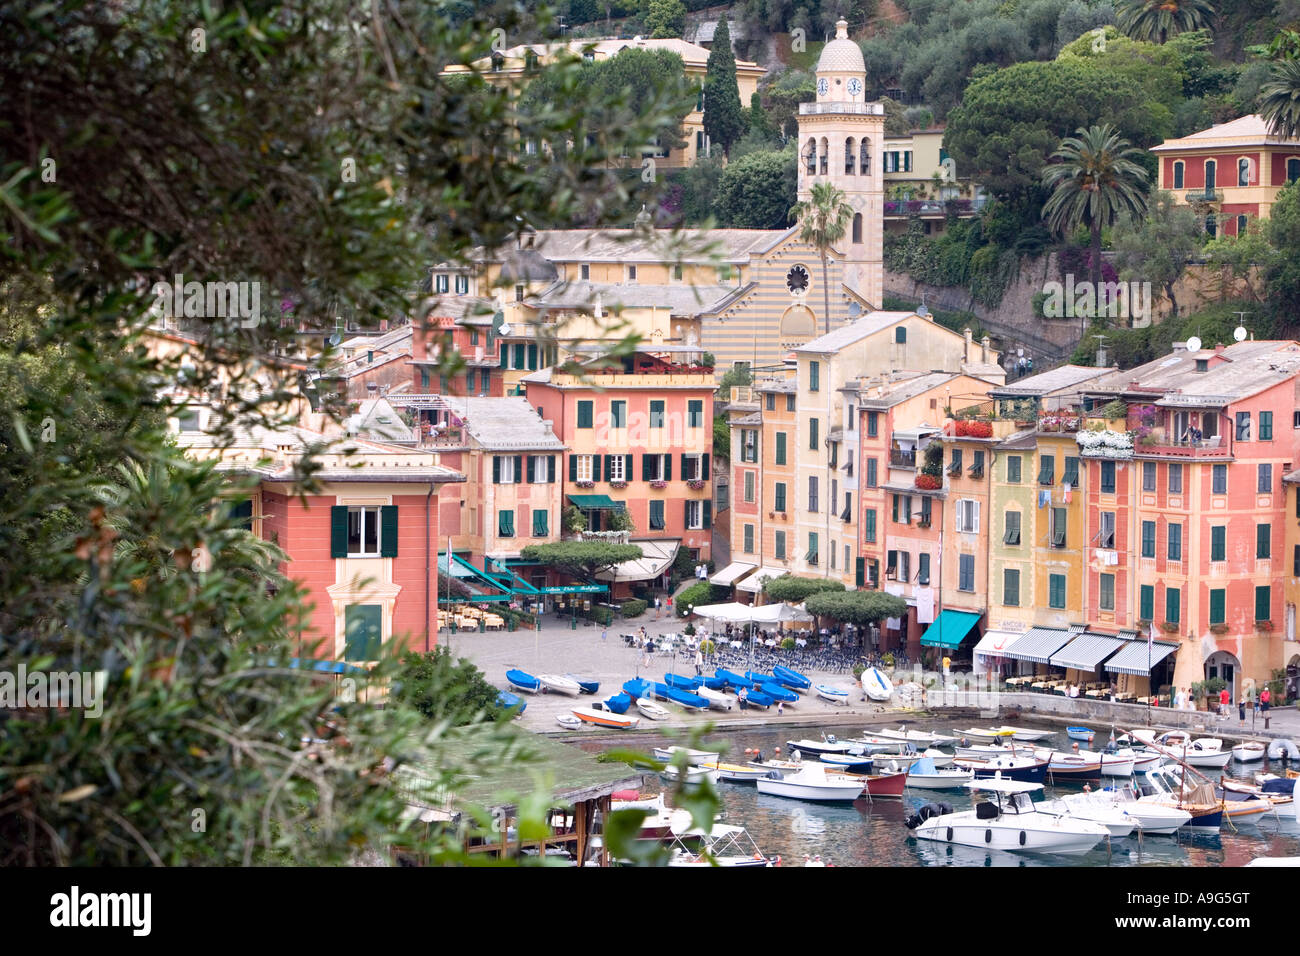 Portofino buildings and sailing vessels Liguria Italy - Stock Image